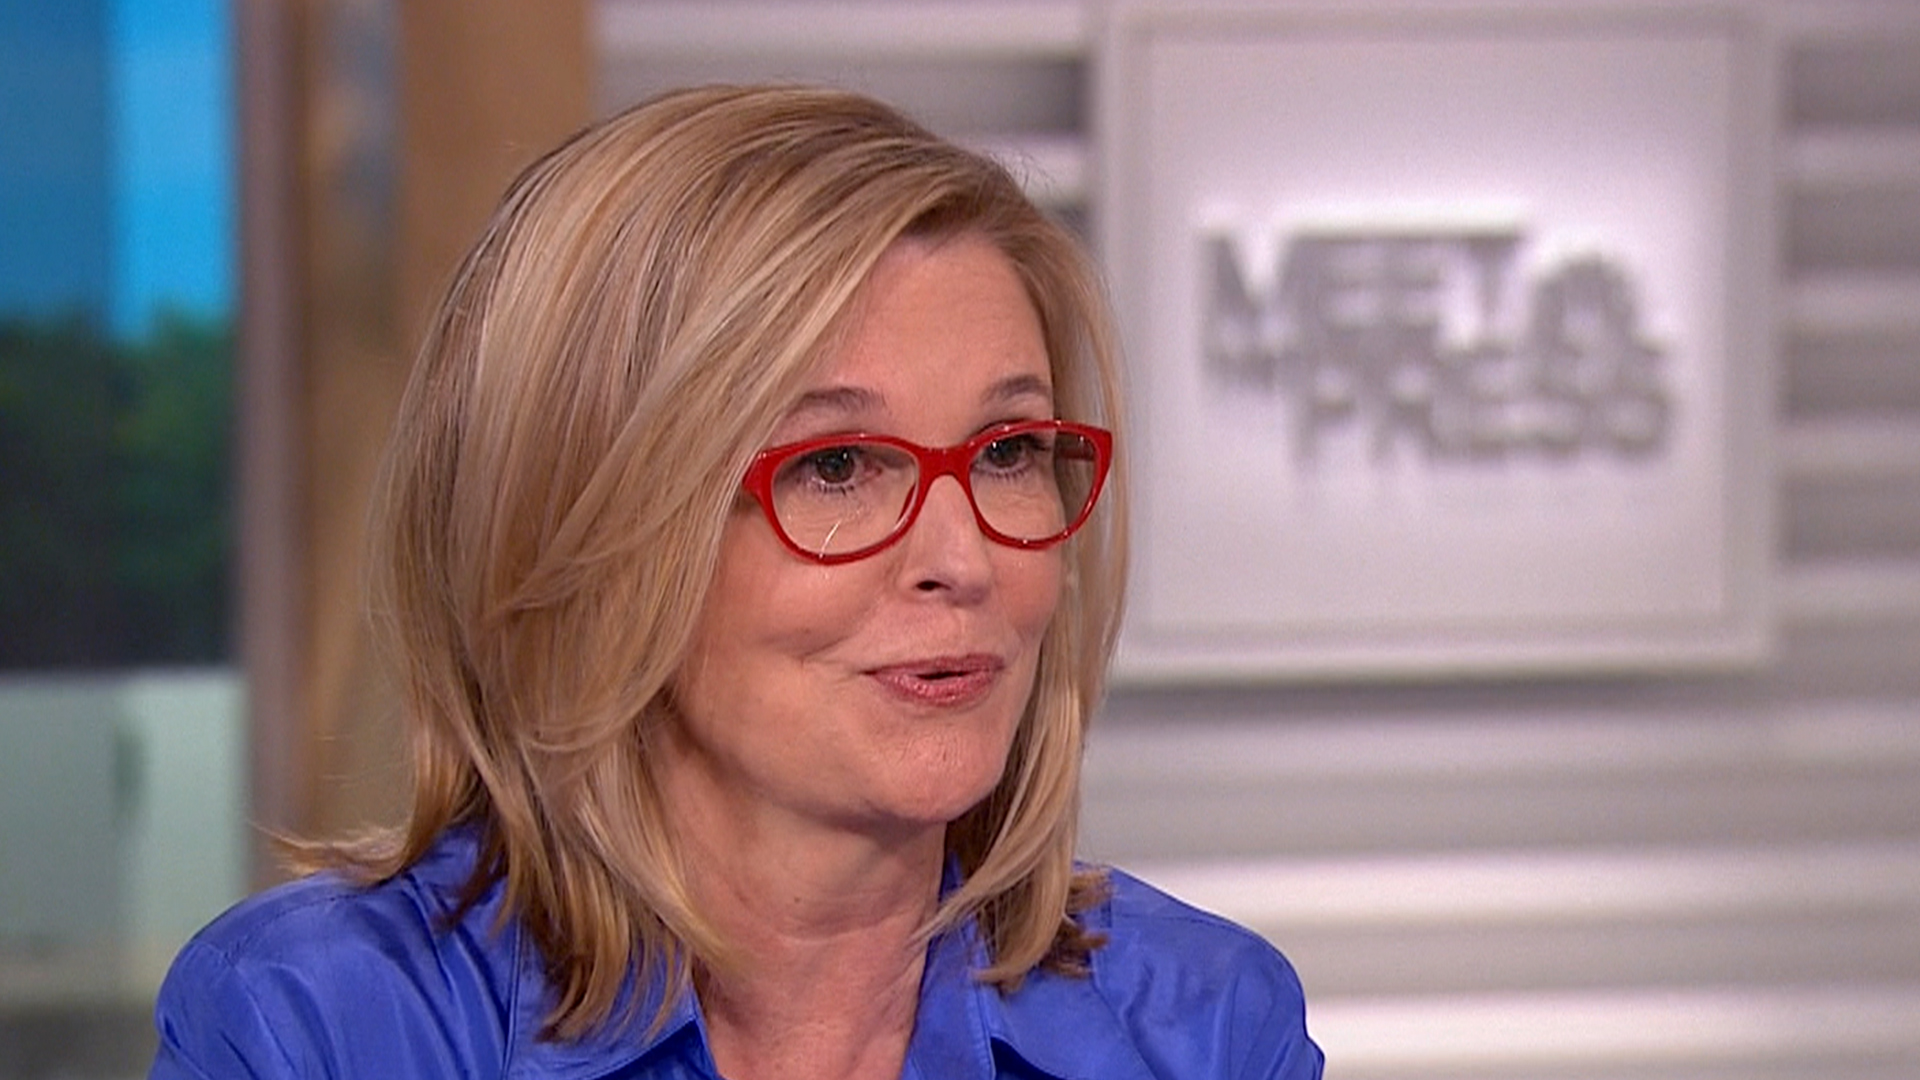 political philosophy of kathleen parker Kathleen parker: centrist movement appeals  an organization dedicated to restoring bipartisanship and a centrist governing philosophy in washington  committed financiers who can underwrite .